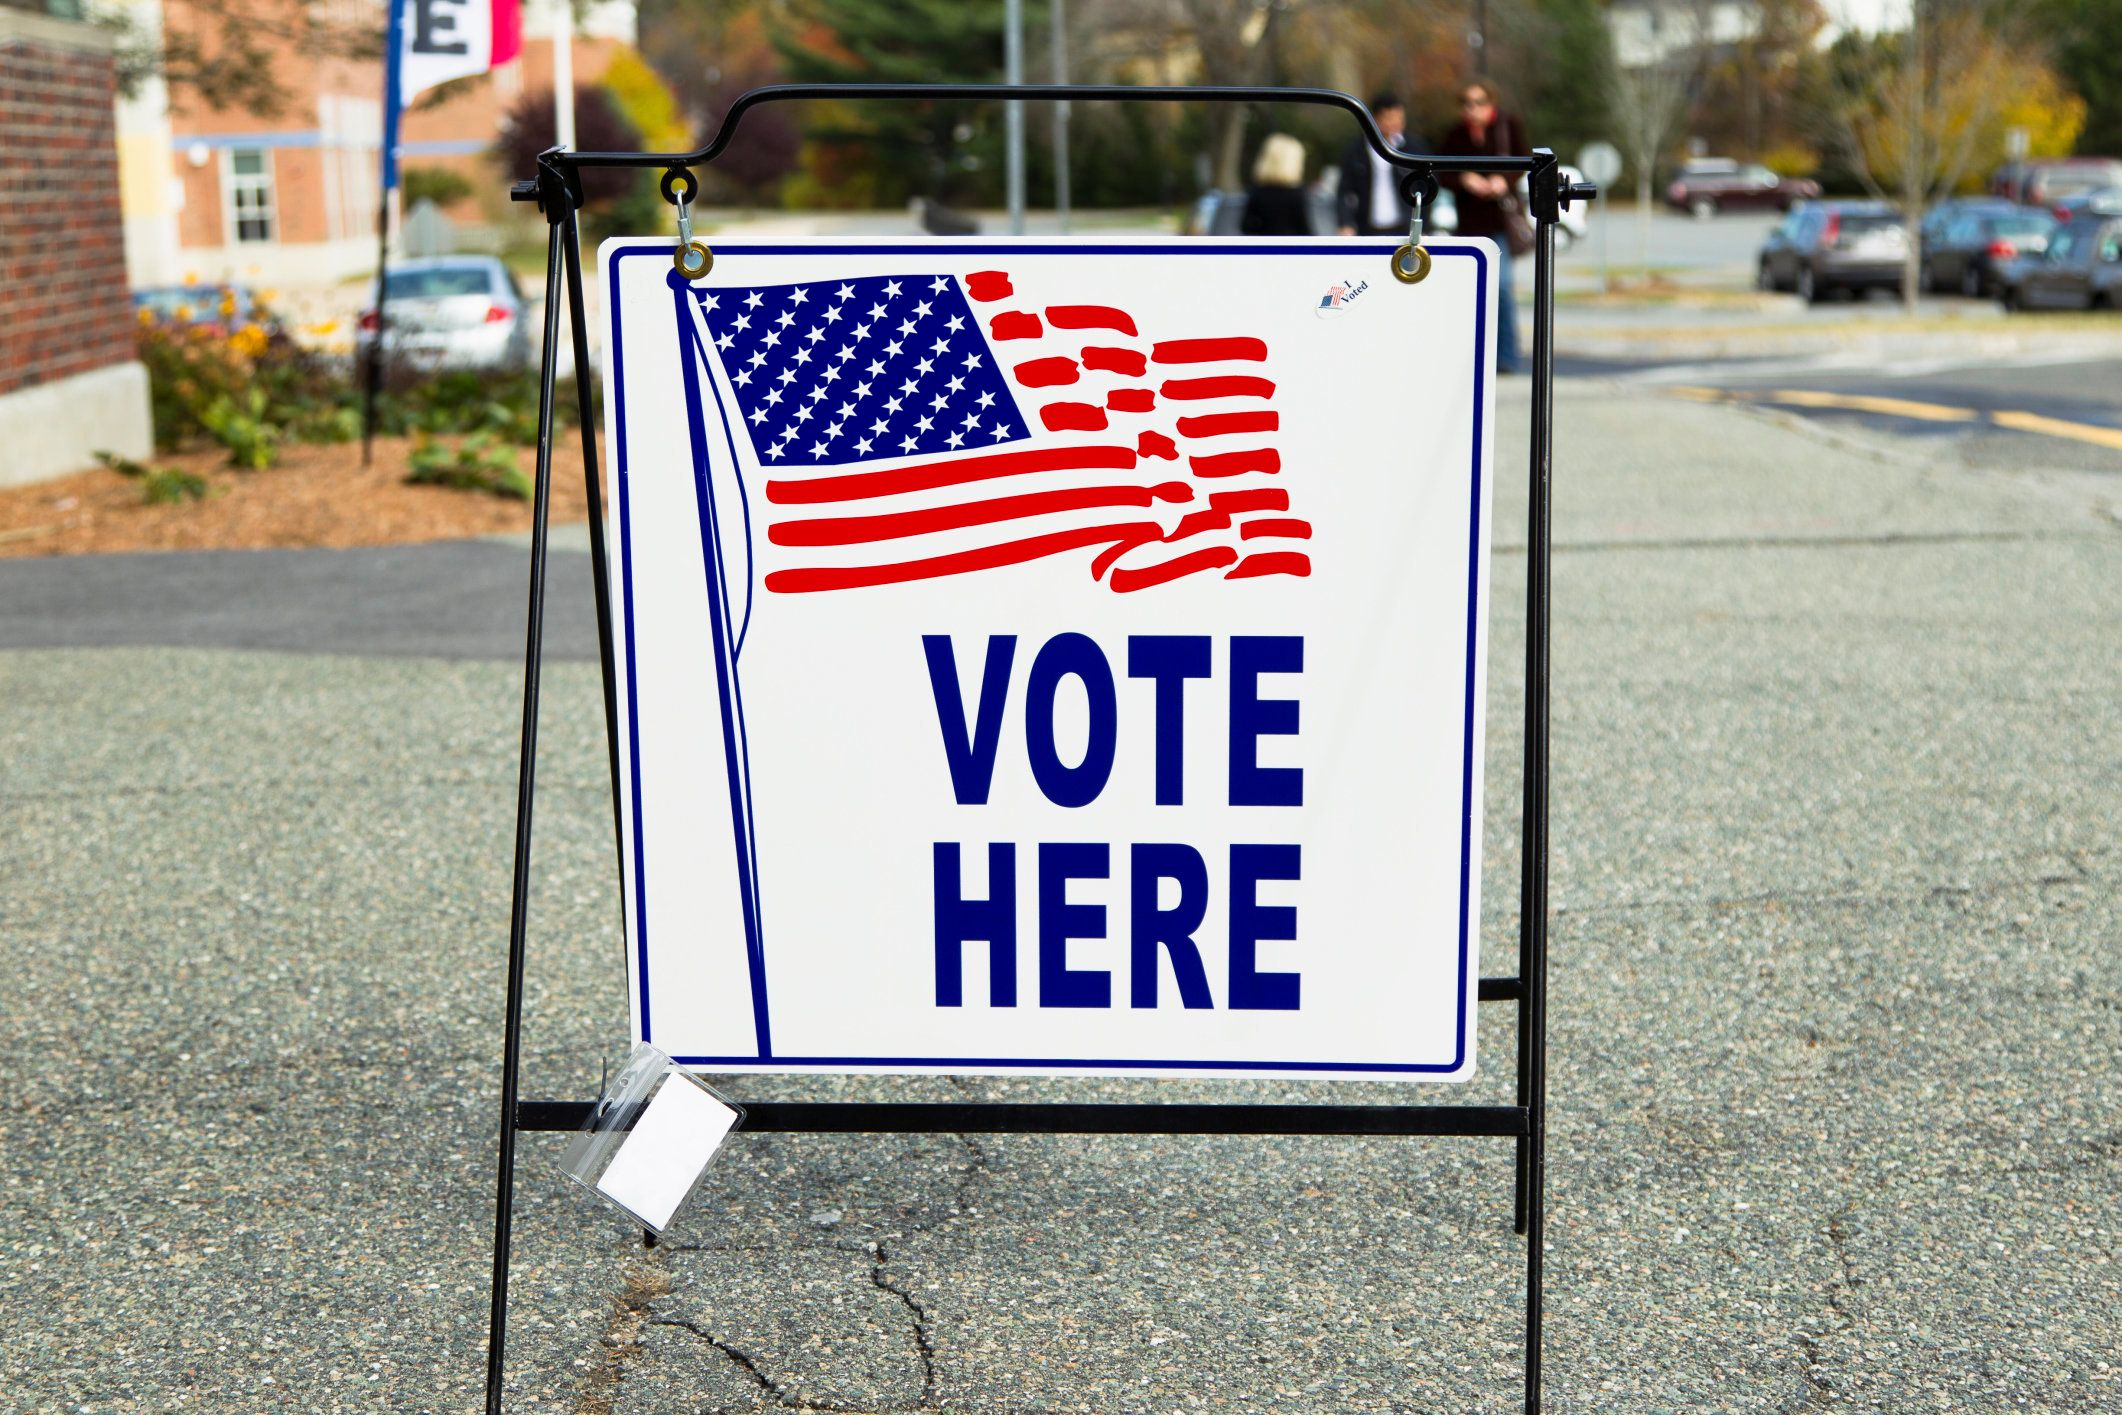 An election polling place station during a United States election.